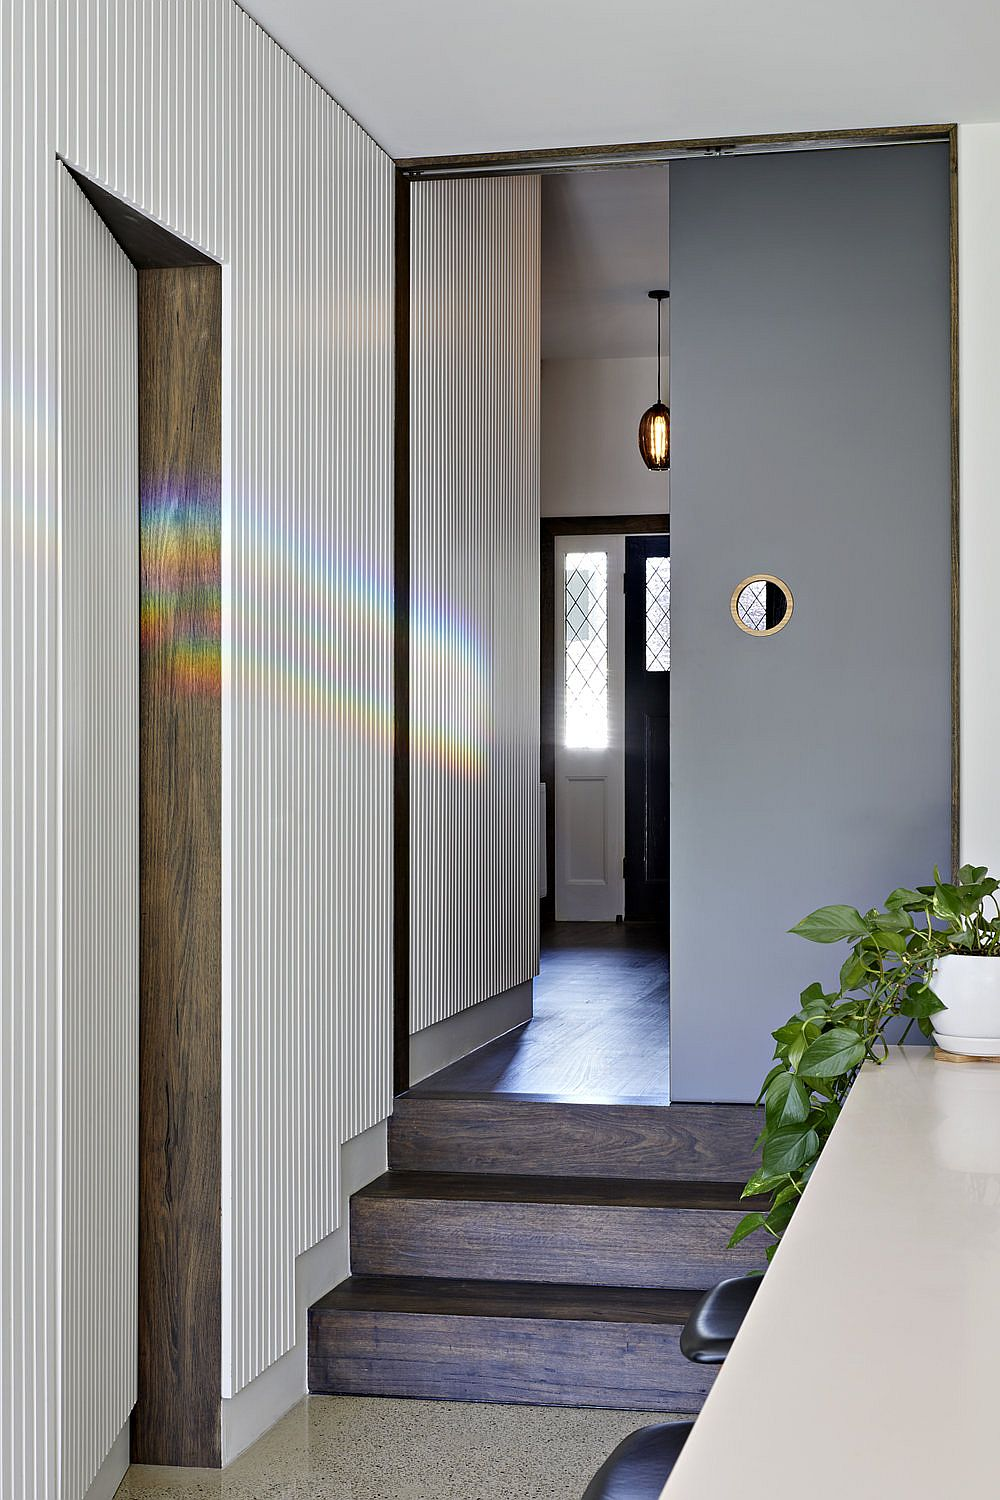 Natural lighting and sliding doors create a space-savvy and cheerful interior